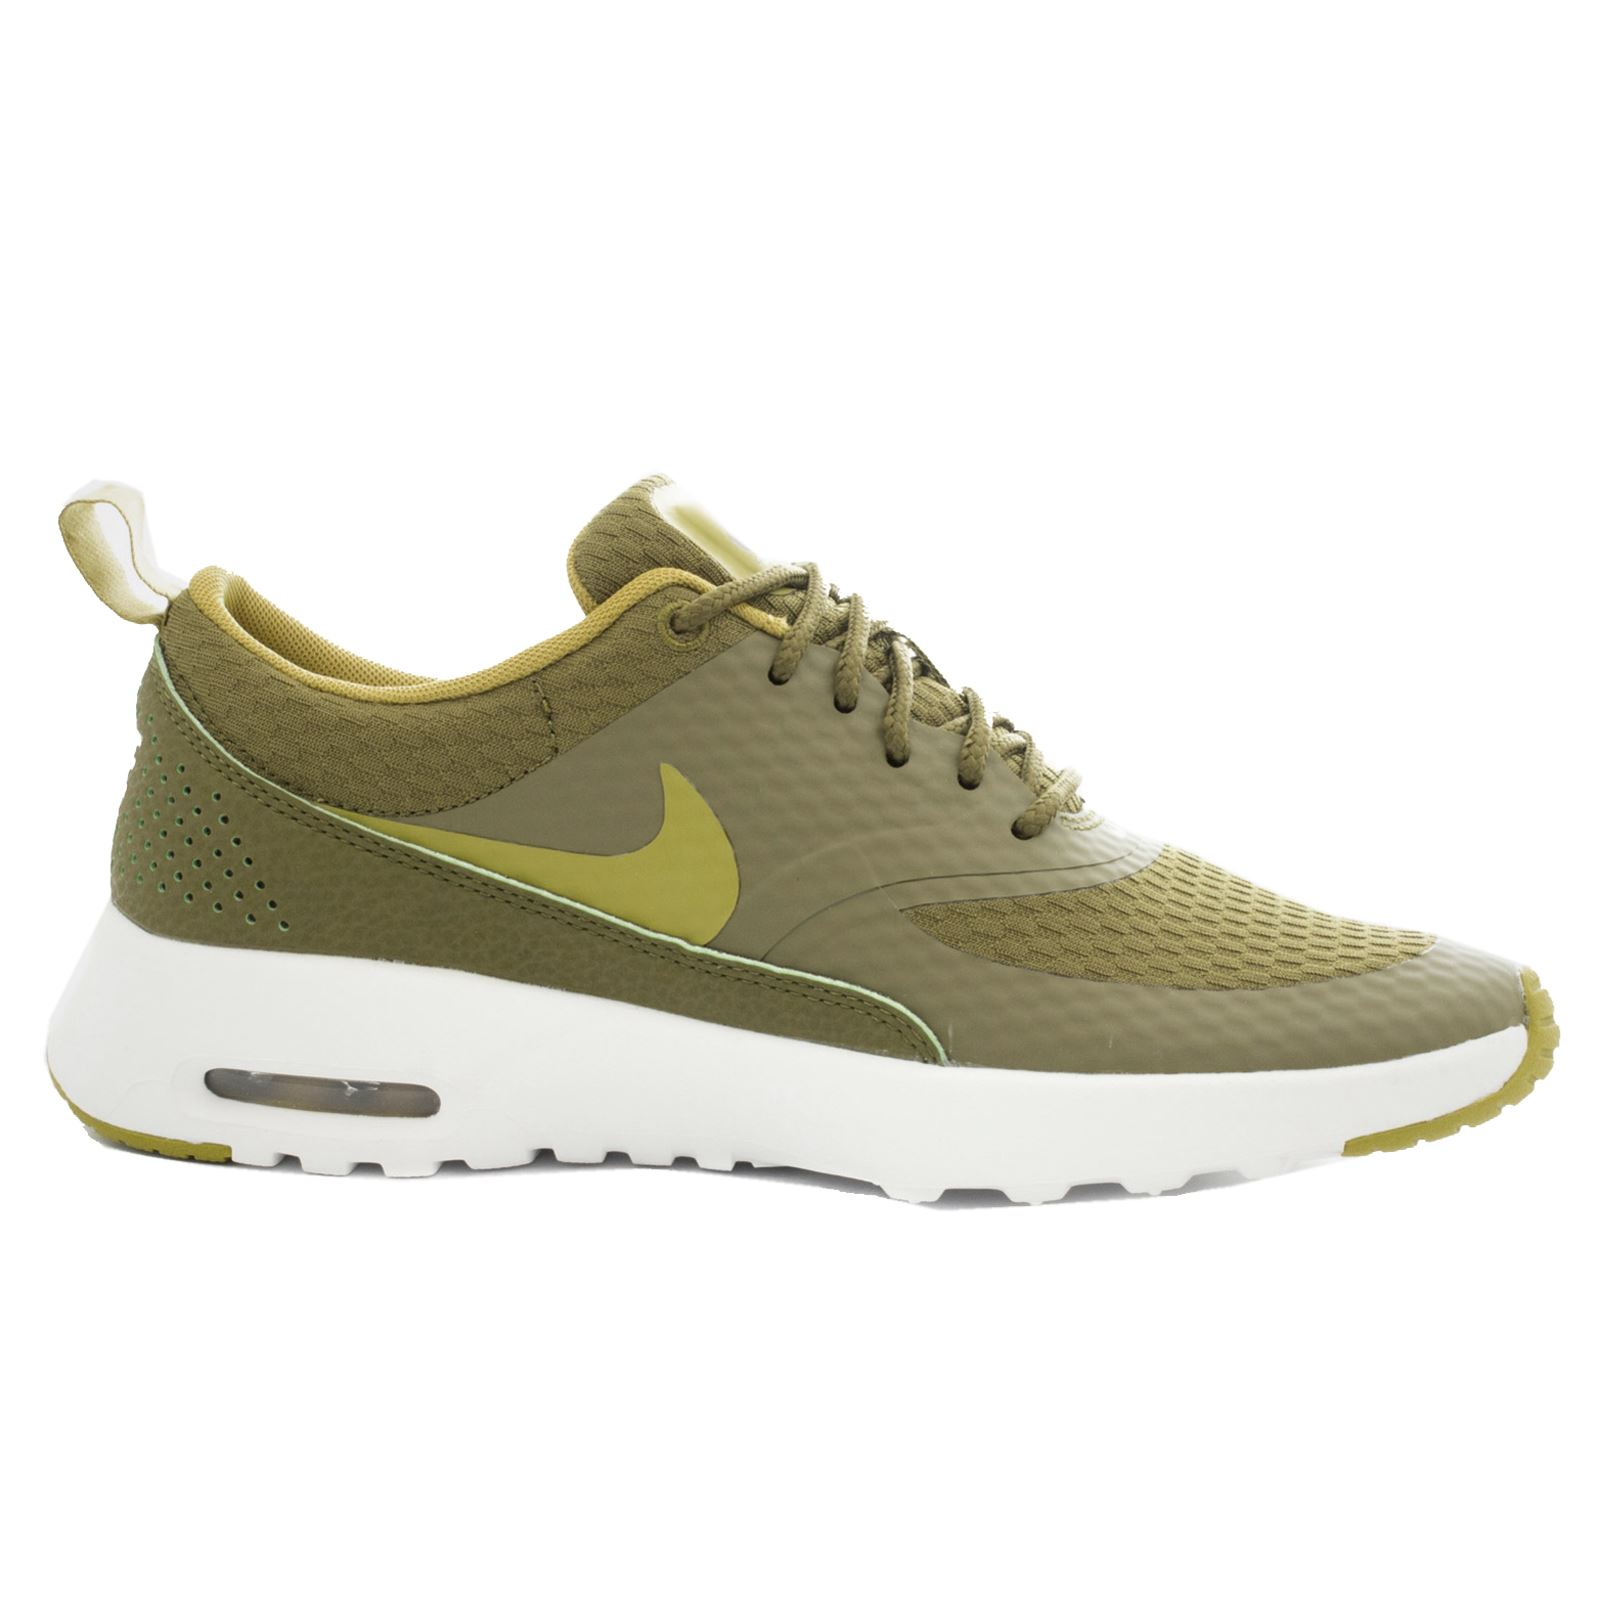 nike air max thea txt olive womens trainers ebay. Black Bedroom Furniture Sets. Home Design Ideas